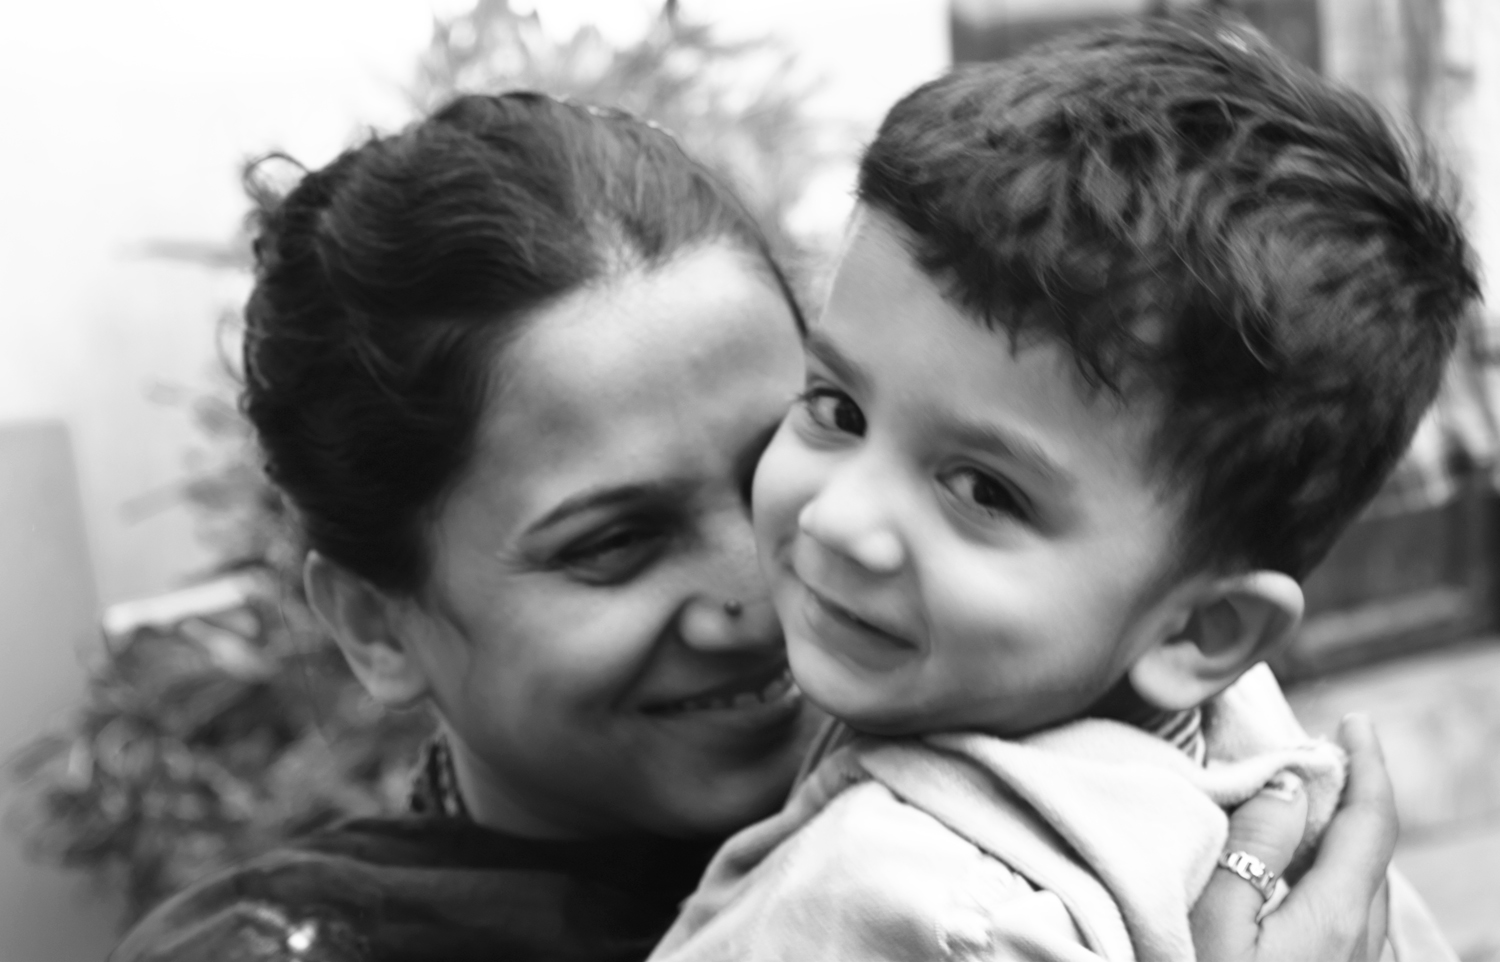 I have shot this photo when a mother cuddle her son and got their expression.